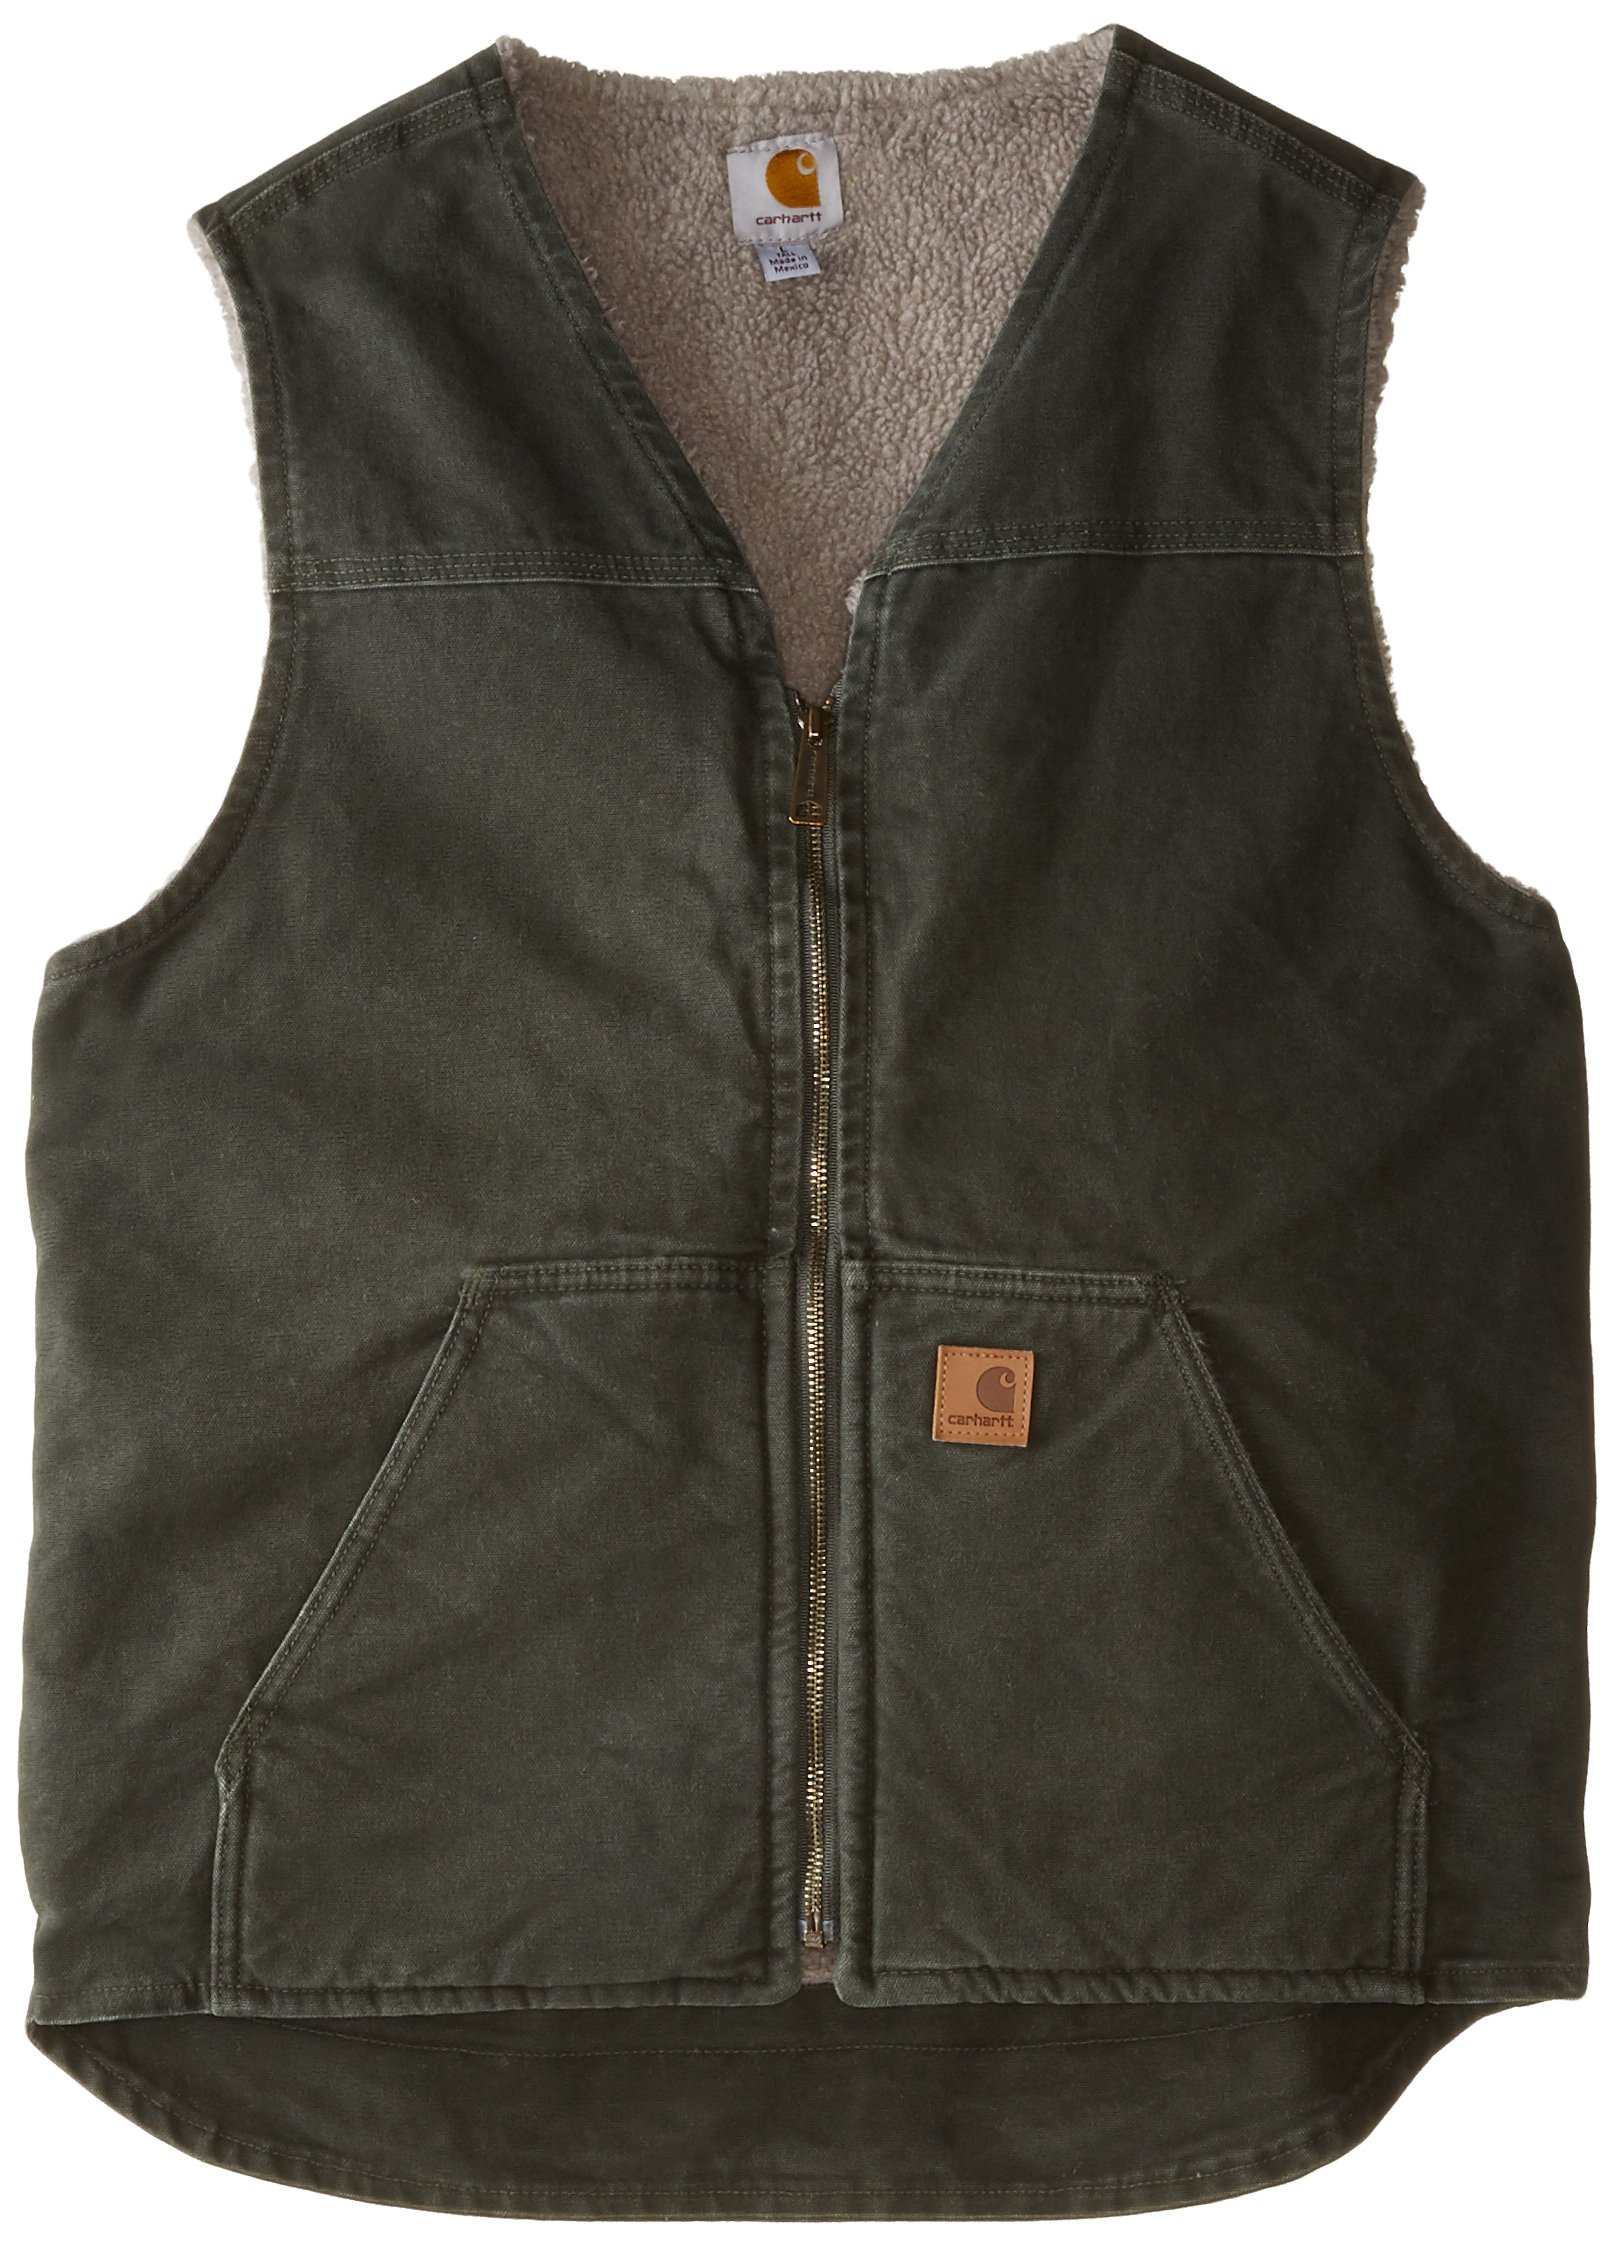 Carhartt Men's Big & Tall Sherpa Lined Sandstone Rugged Vest V26,Moss,X-Large Tall